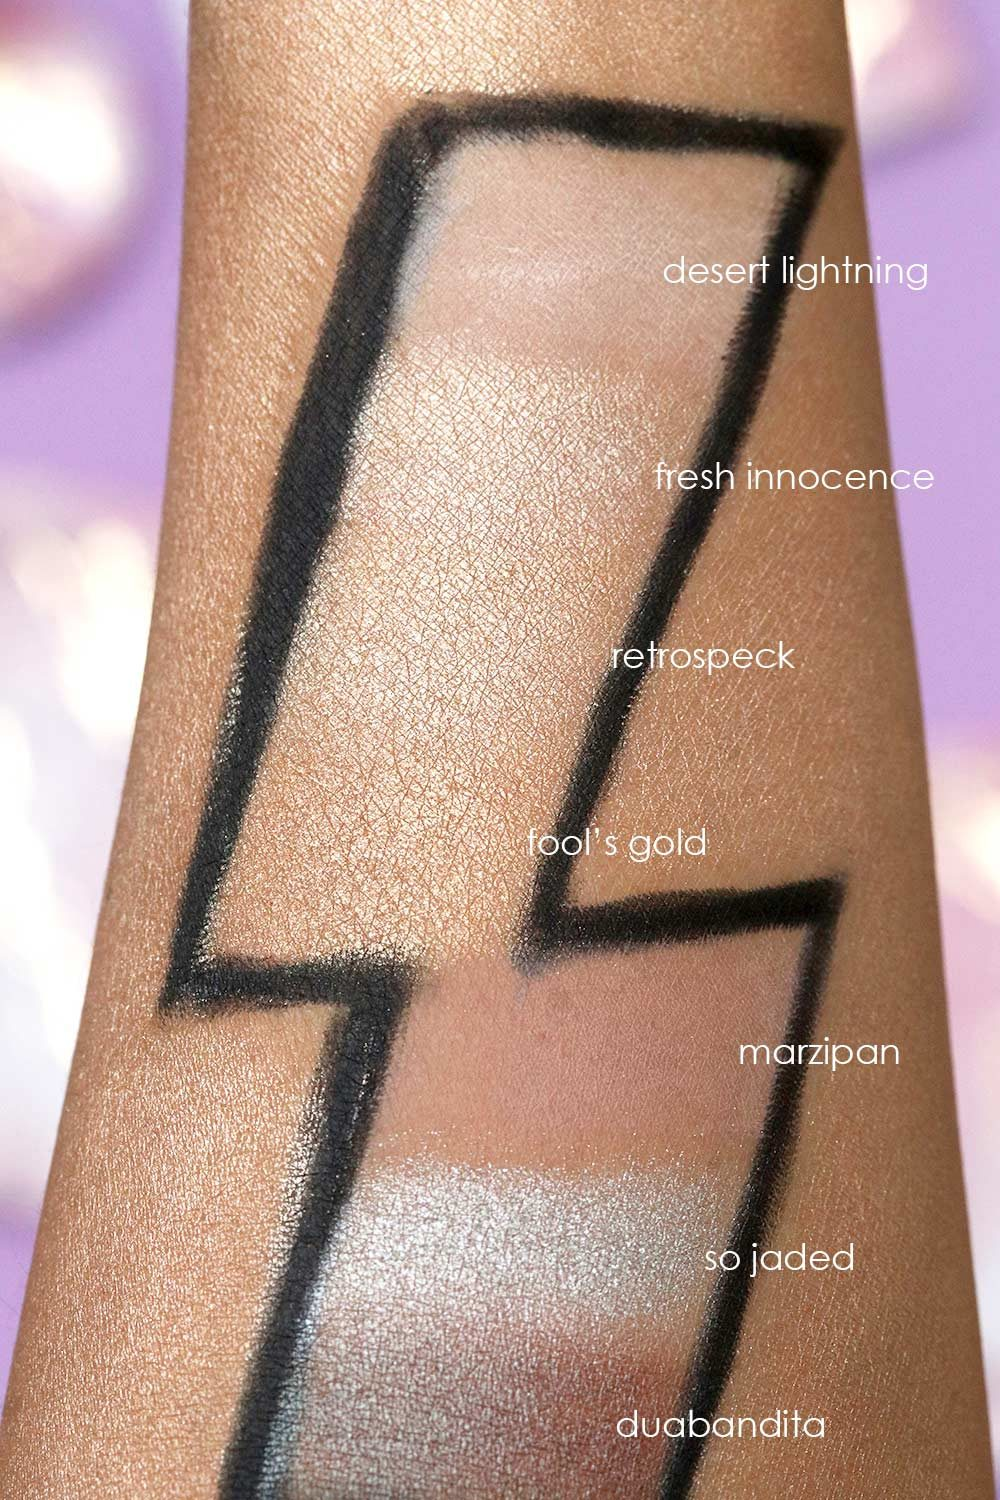 mac desert lightning swatch 1